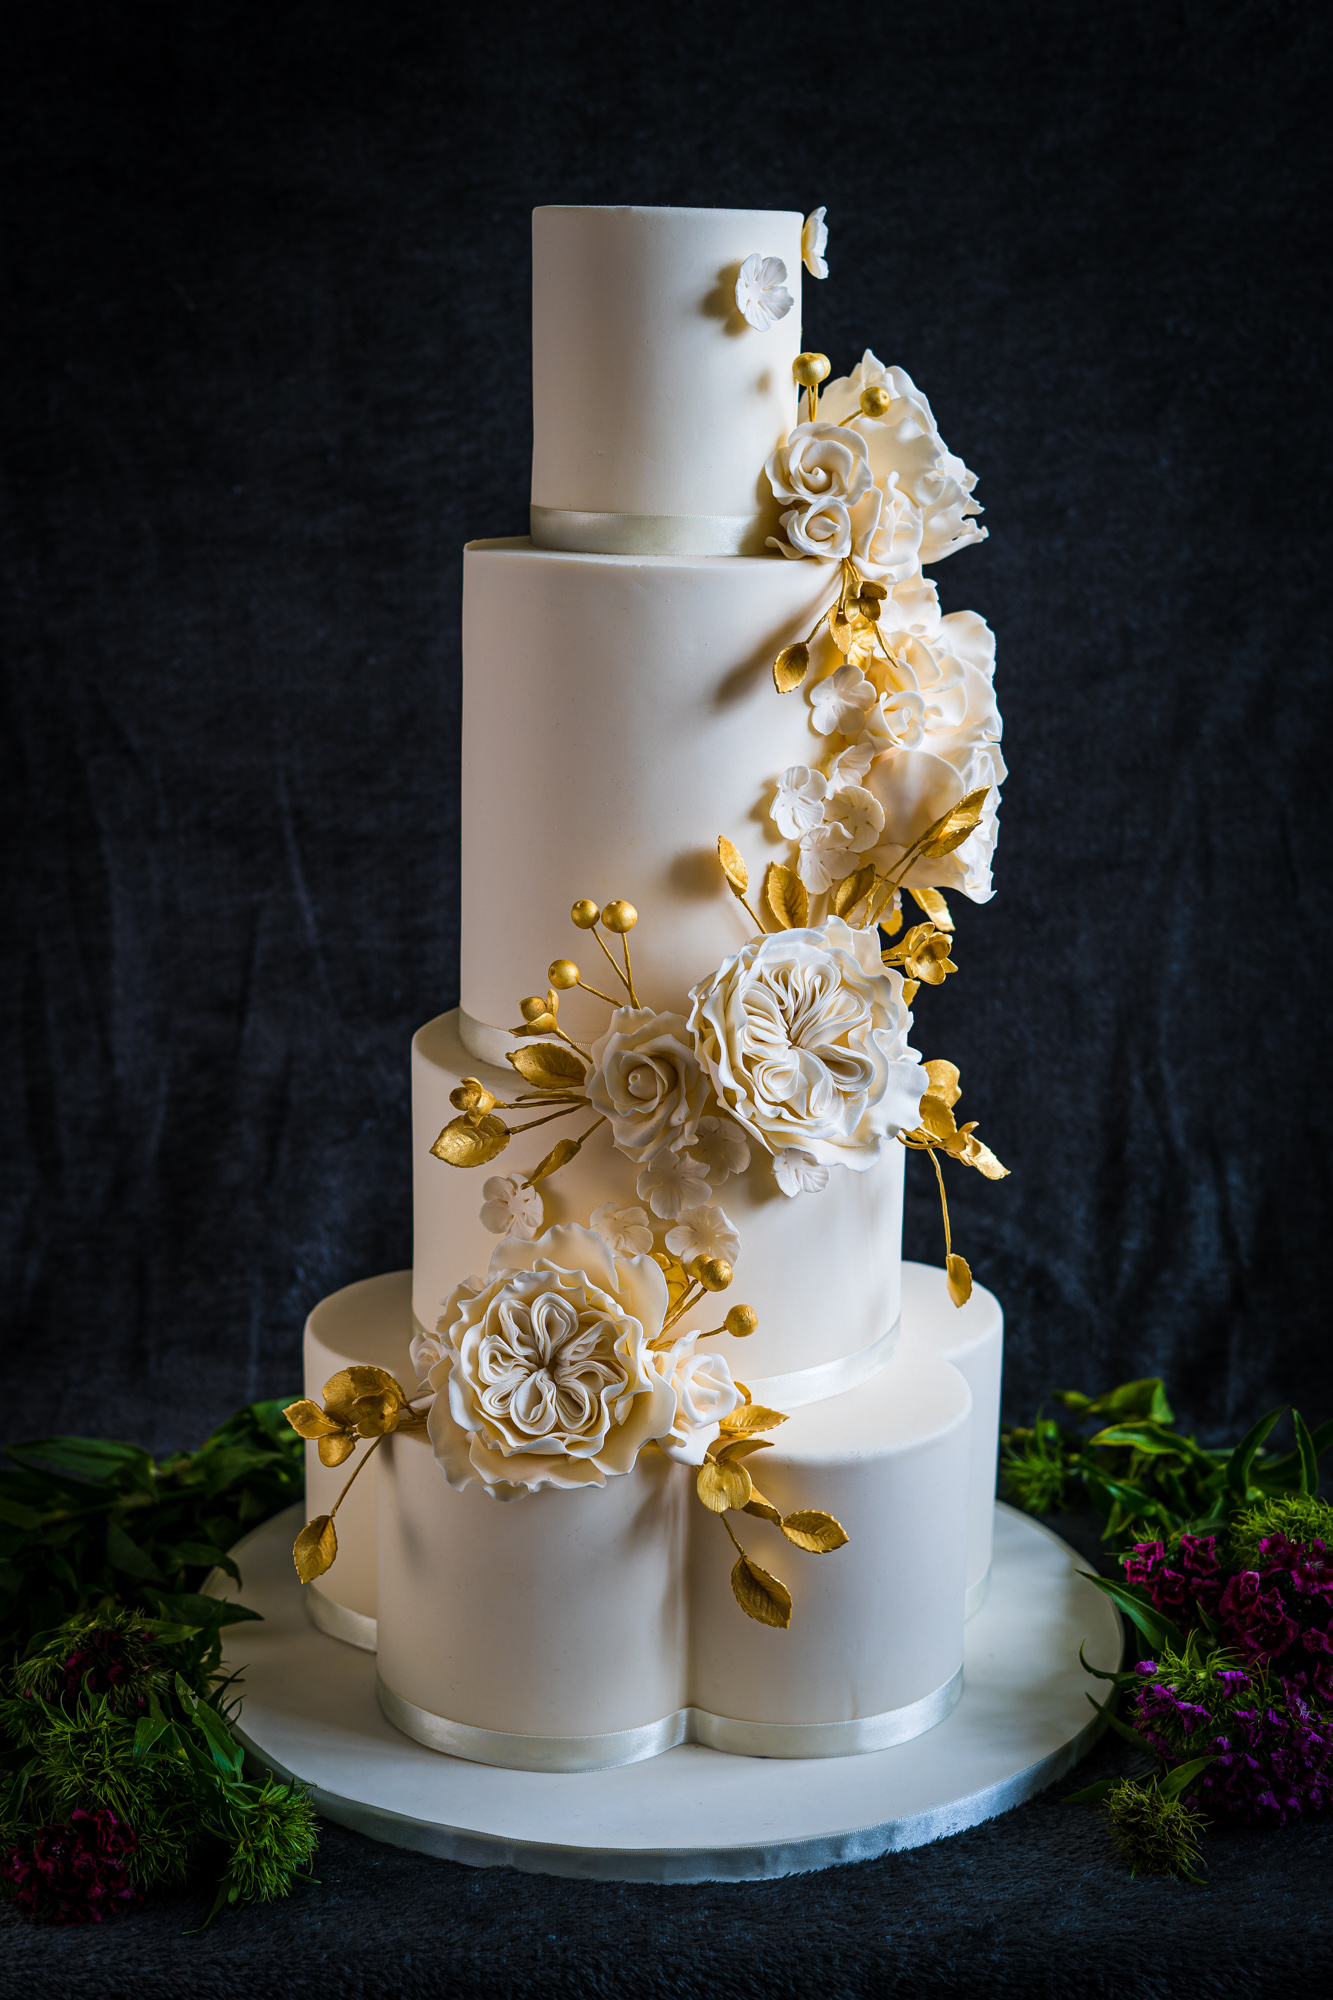 White and gold 4 tier wedding cake